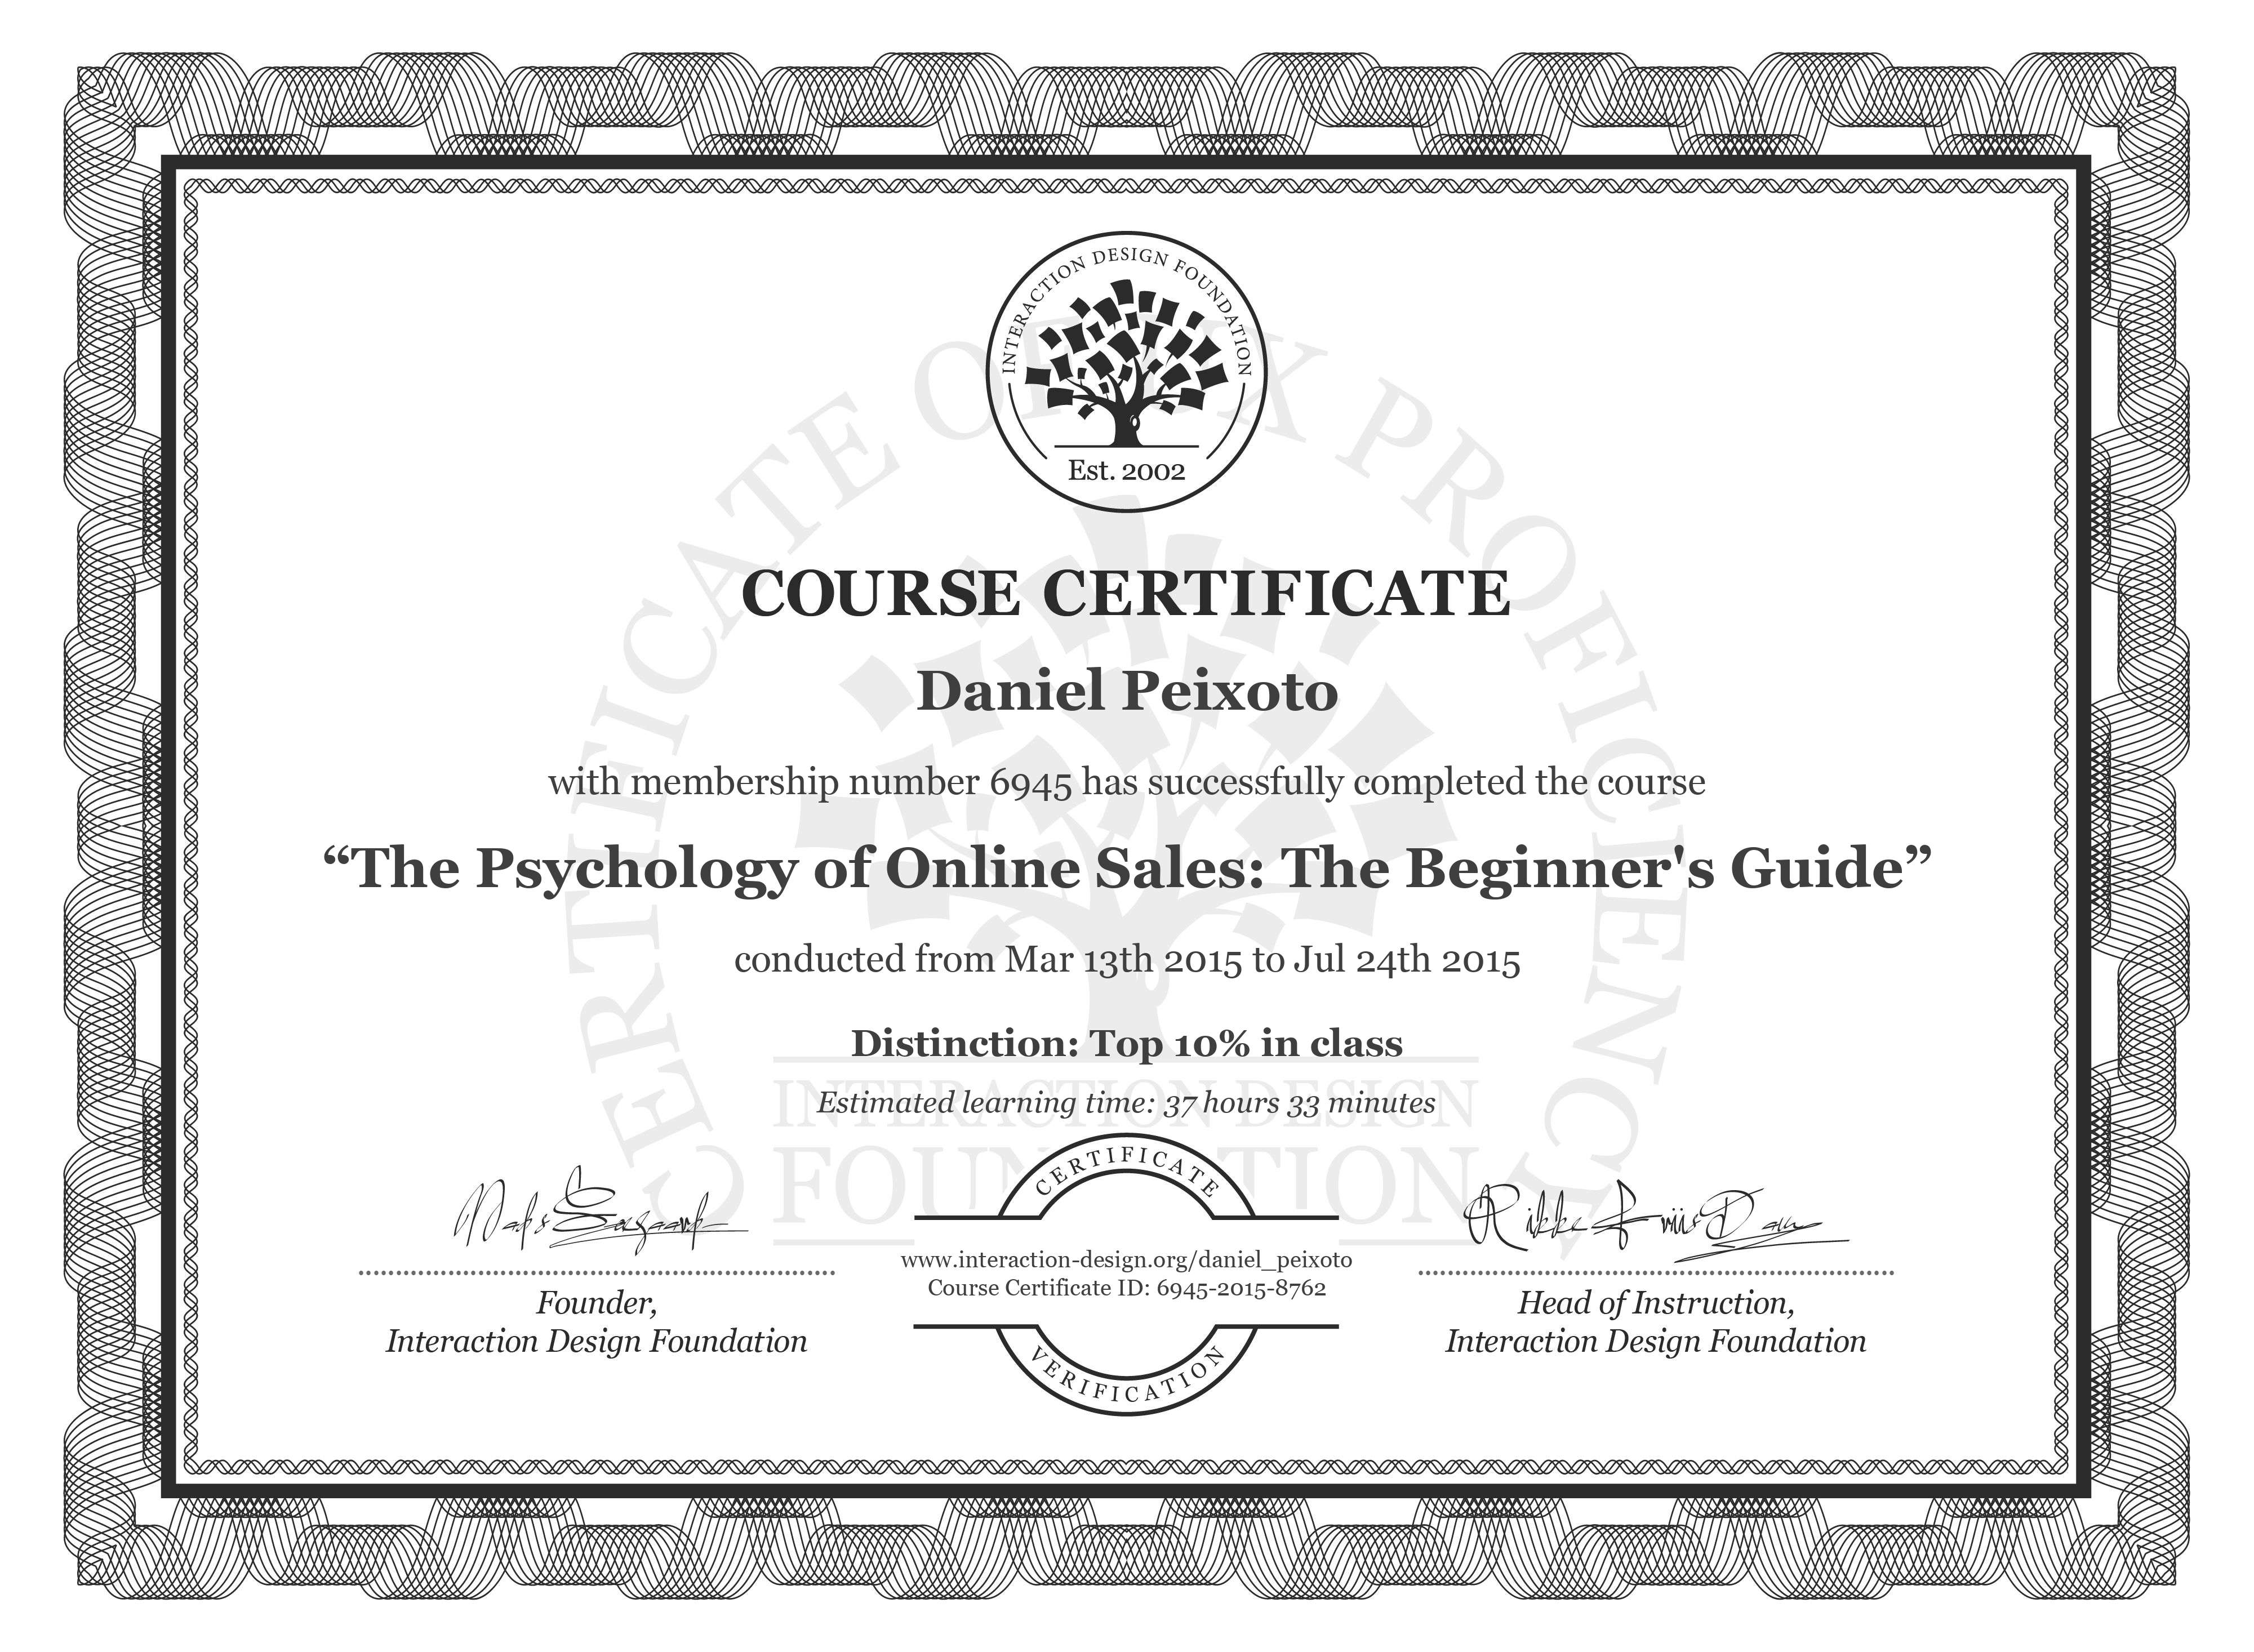 Daniel Peixoto: Course Certificate - The Psychology of Online Sales: The Beginner's Guide